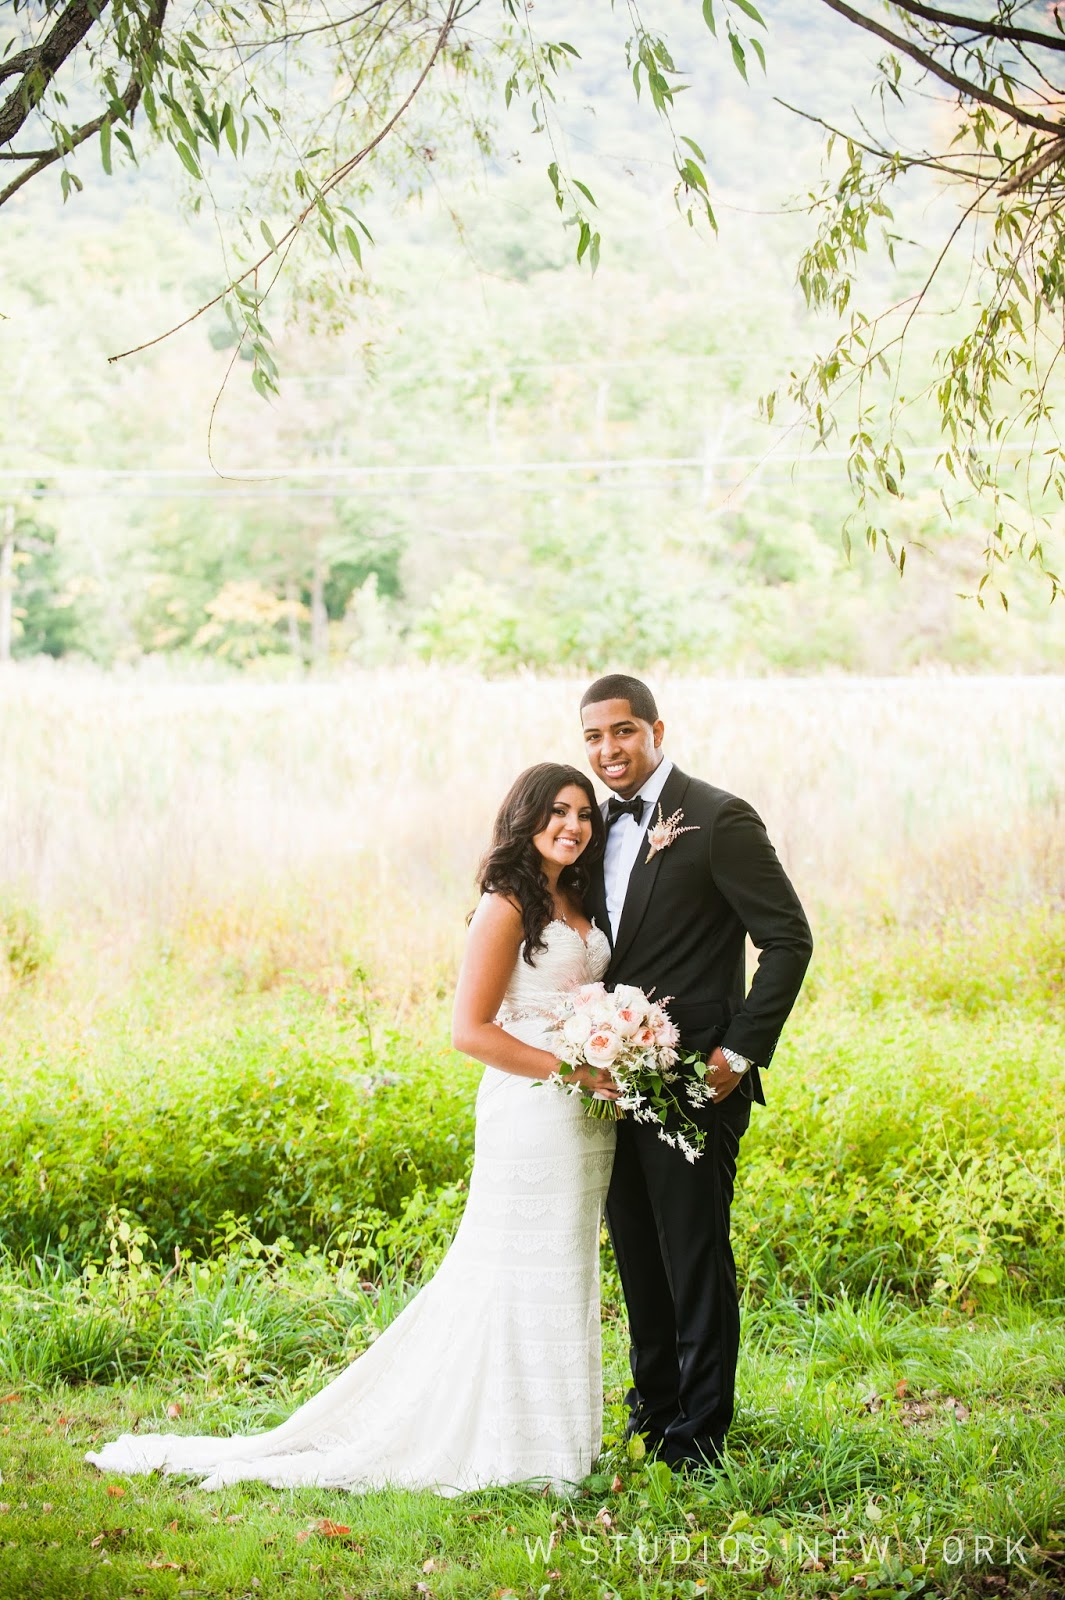 Highlands Club Wedding - Hudson Valley NY Weddings - Bouquets